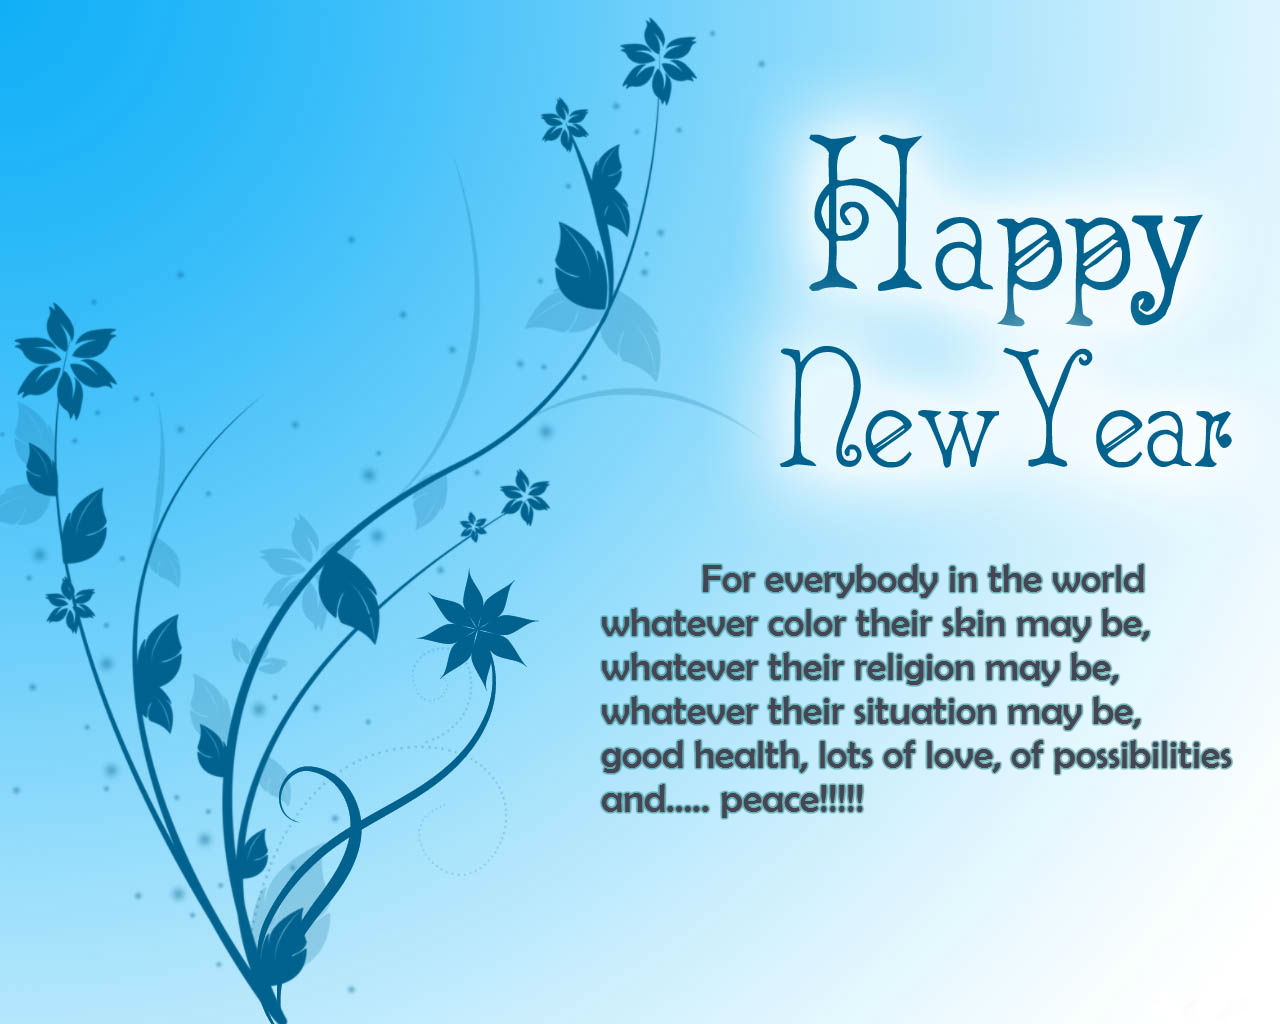 Happy new year 2017 wishes messages happy new year 2017 wishes explore unique christmas cards christmas 2015 and more kristyandbryce Image collections